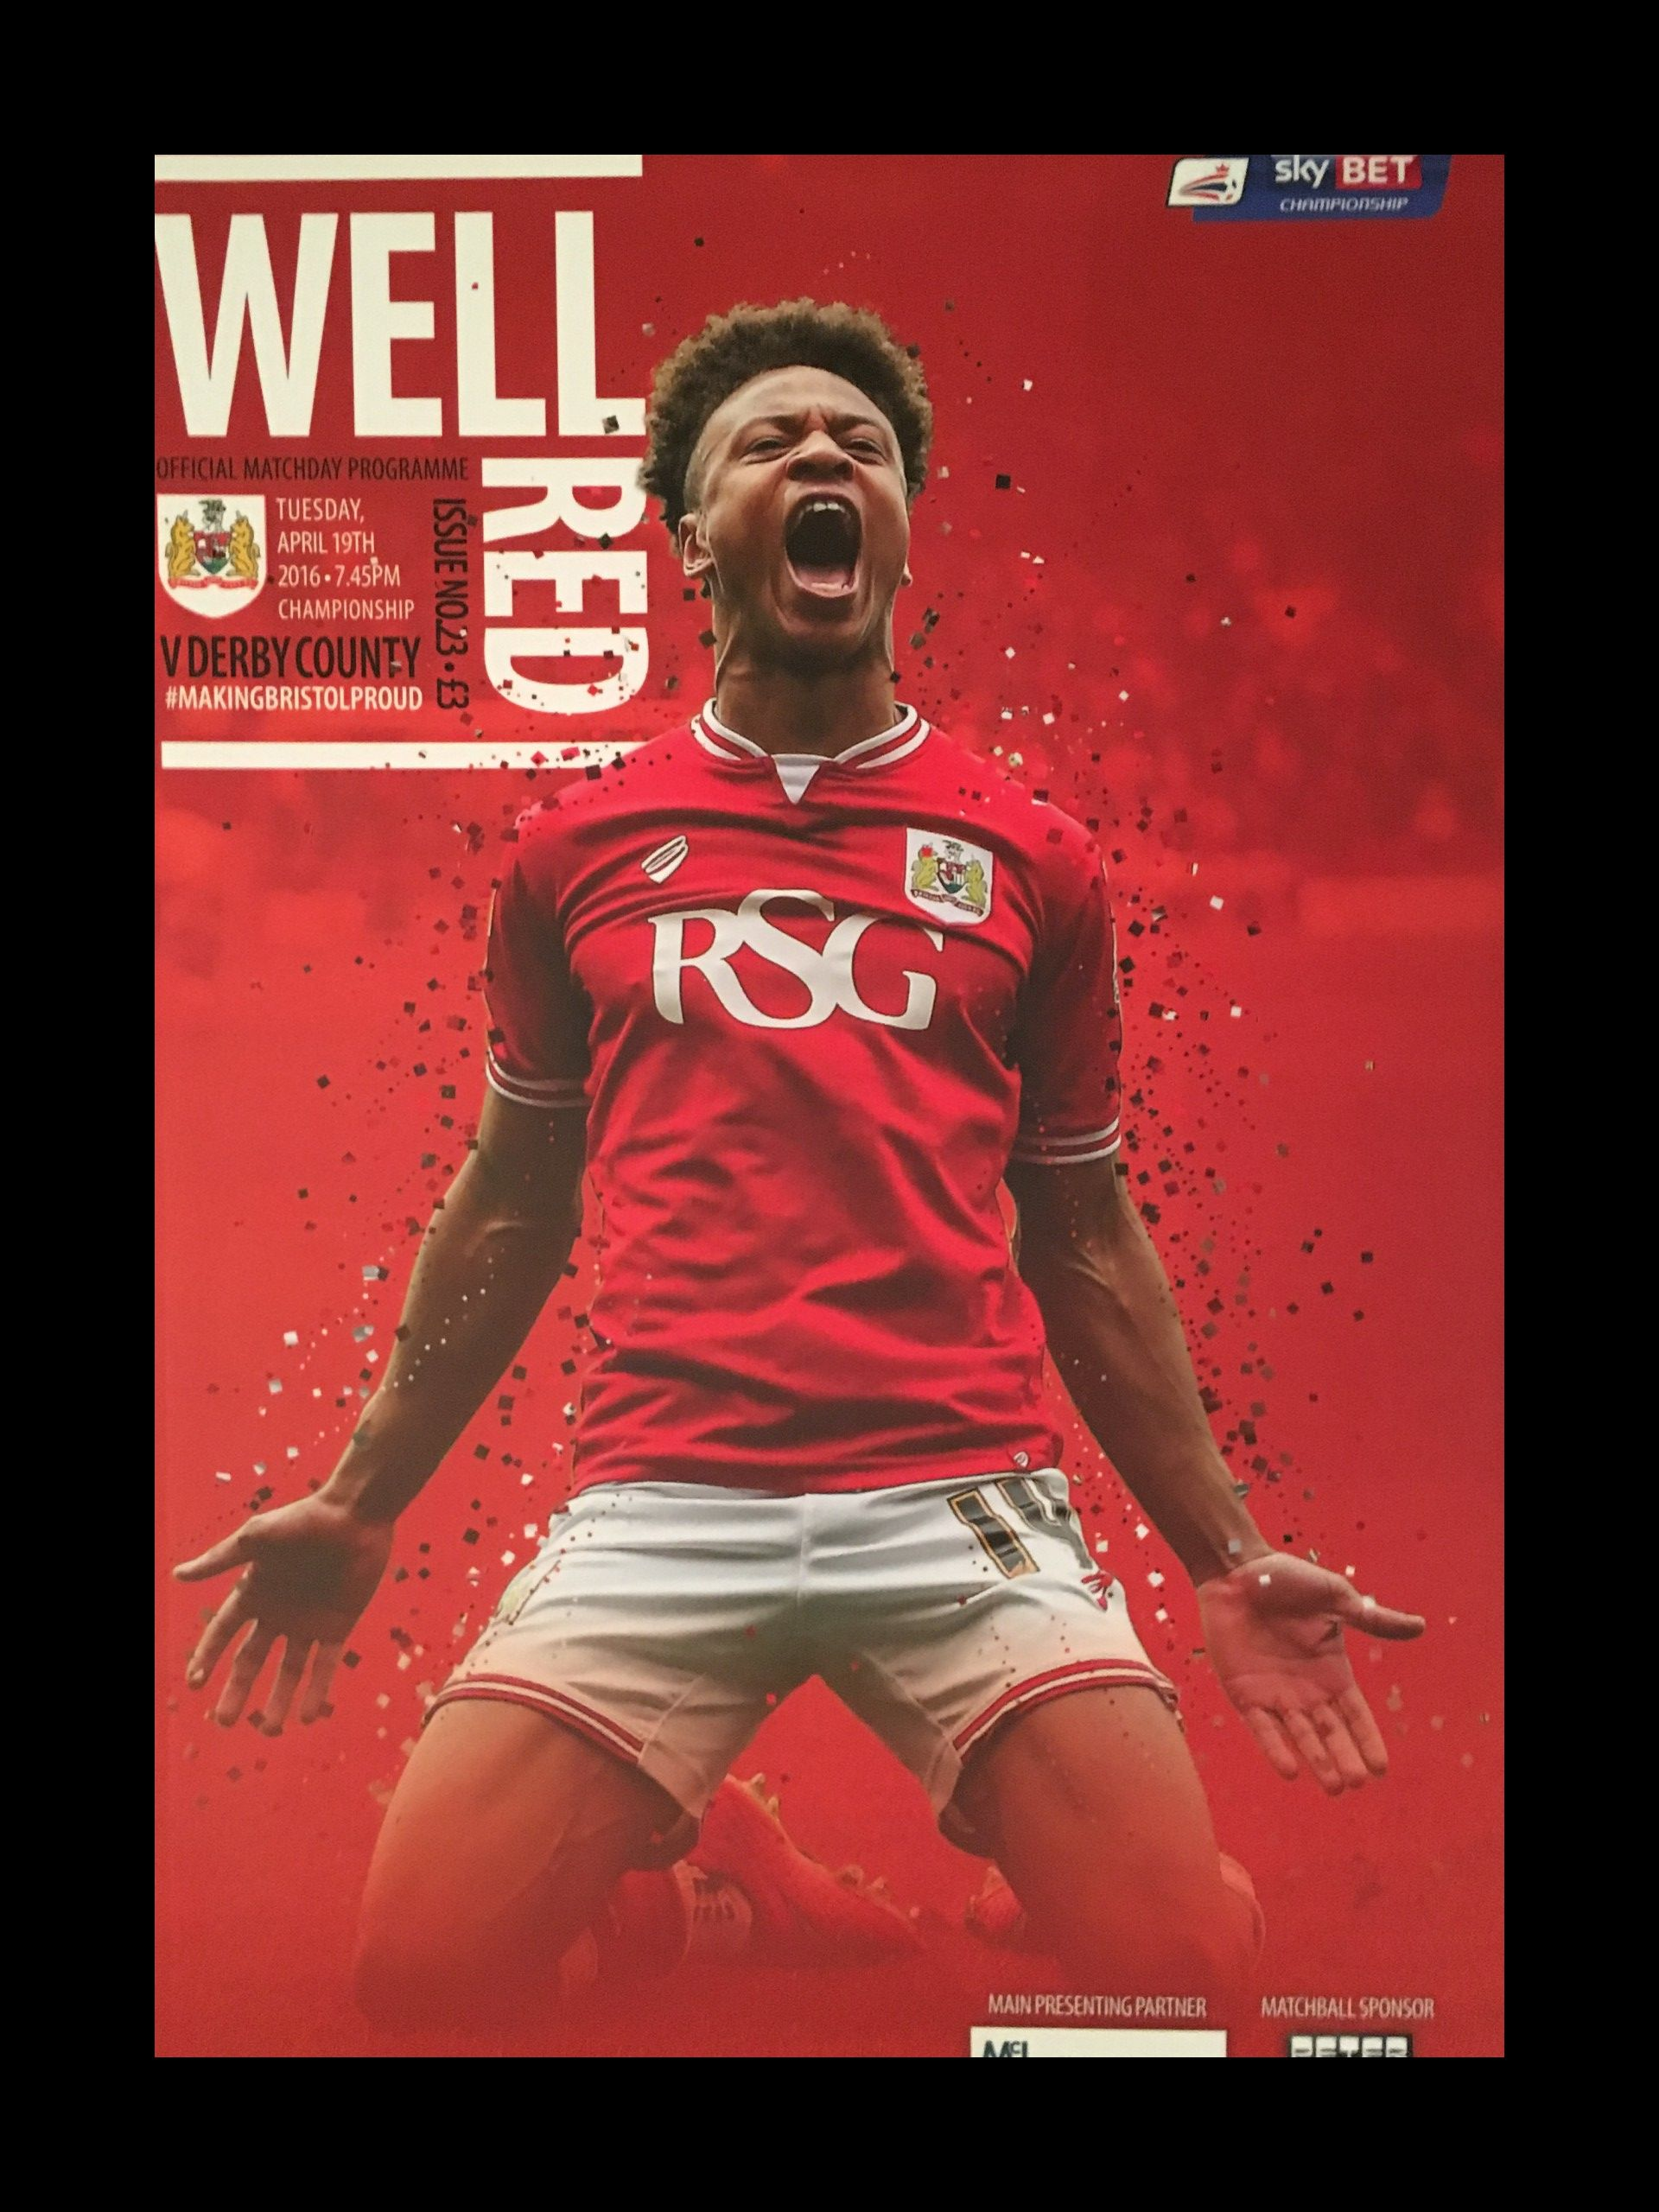 Bristol City v Derby County 19-04-2016 Programme